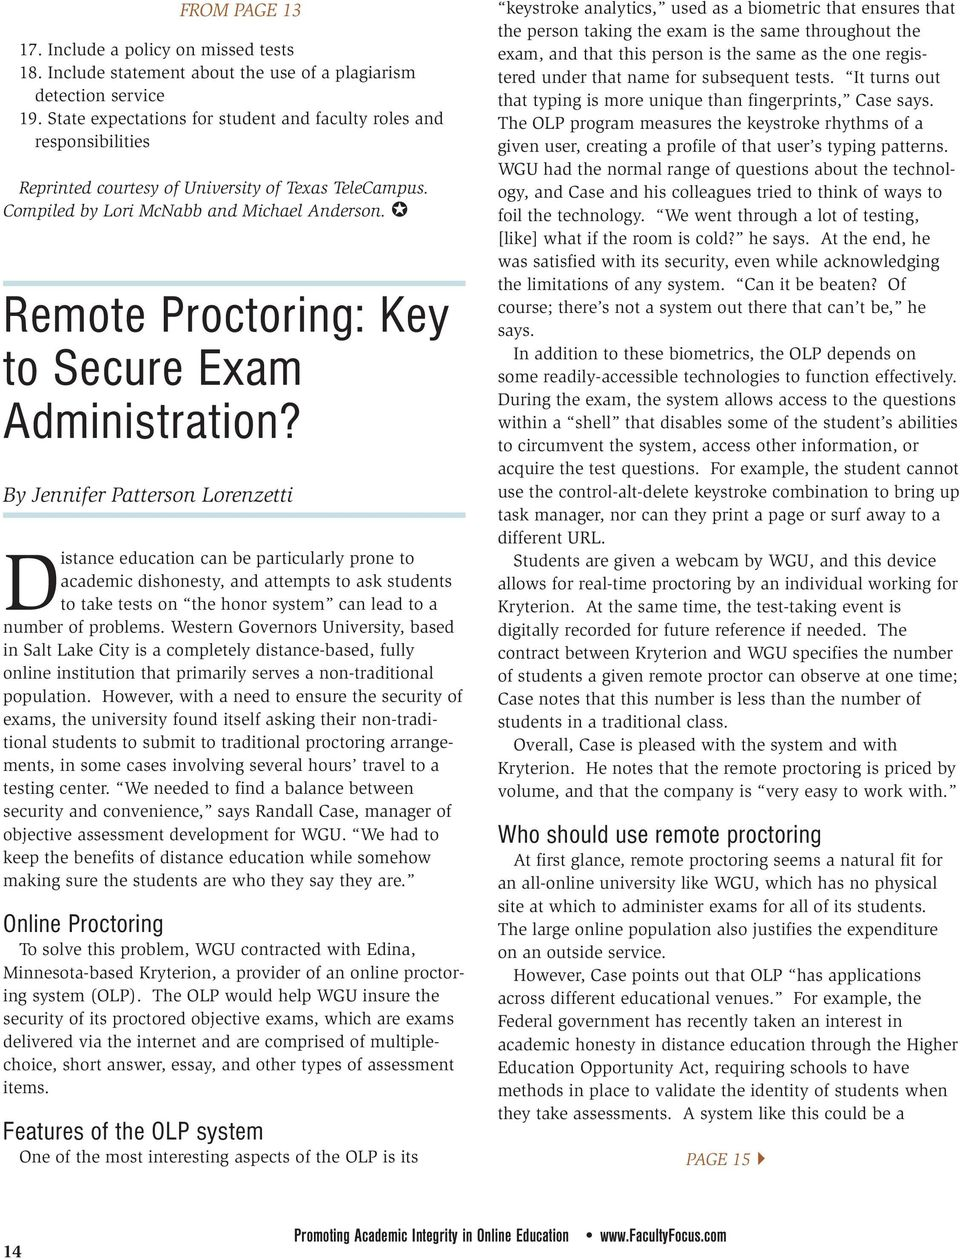 Remote Proctoring: Key to Secure Exam Administration?